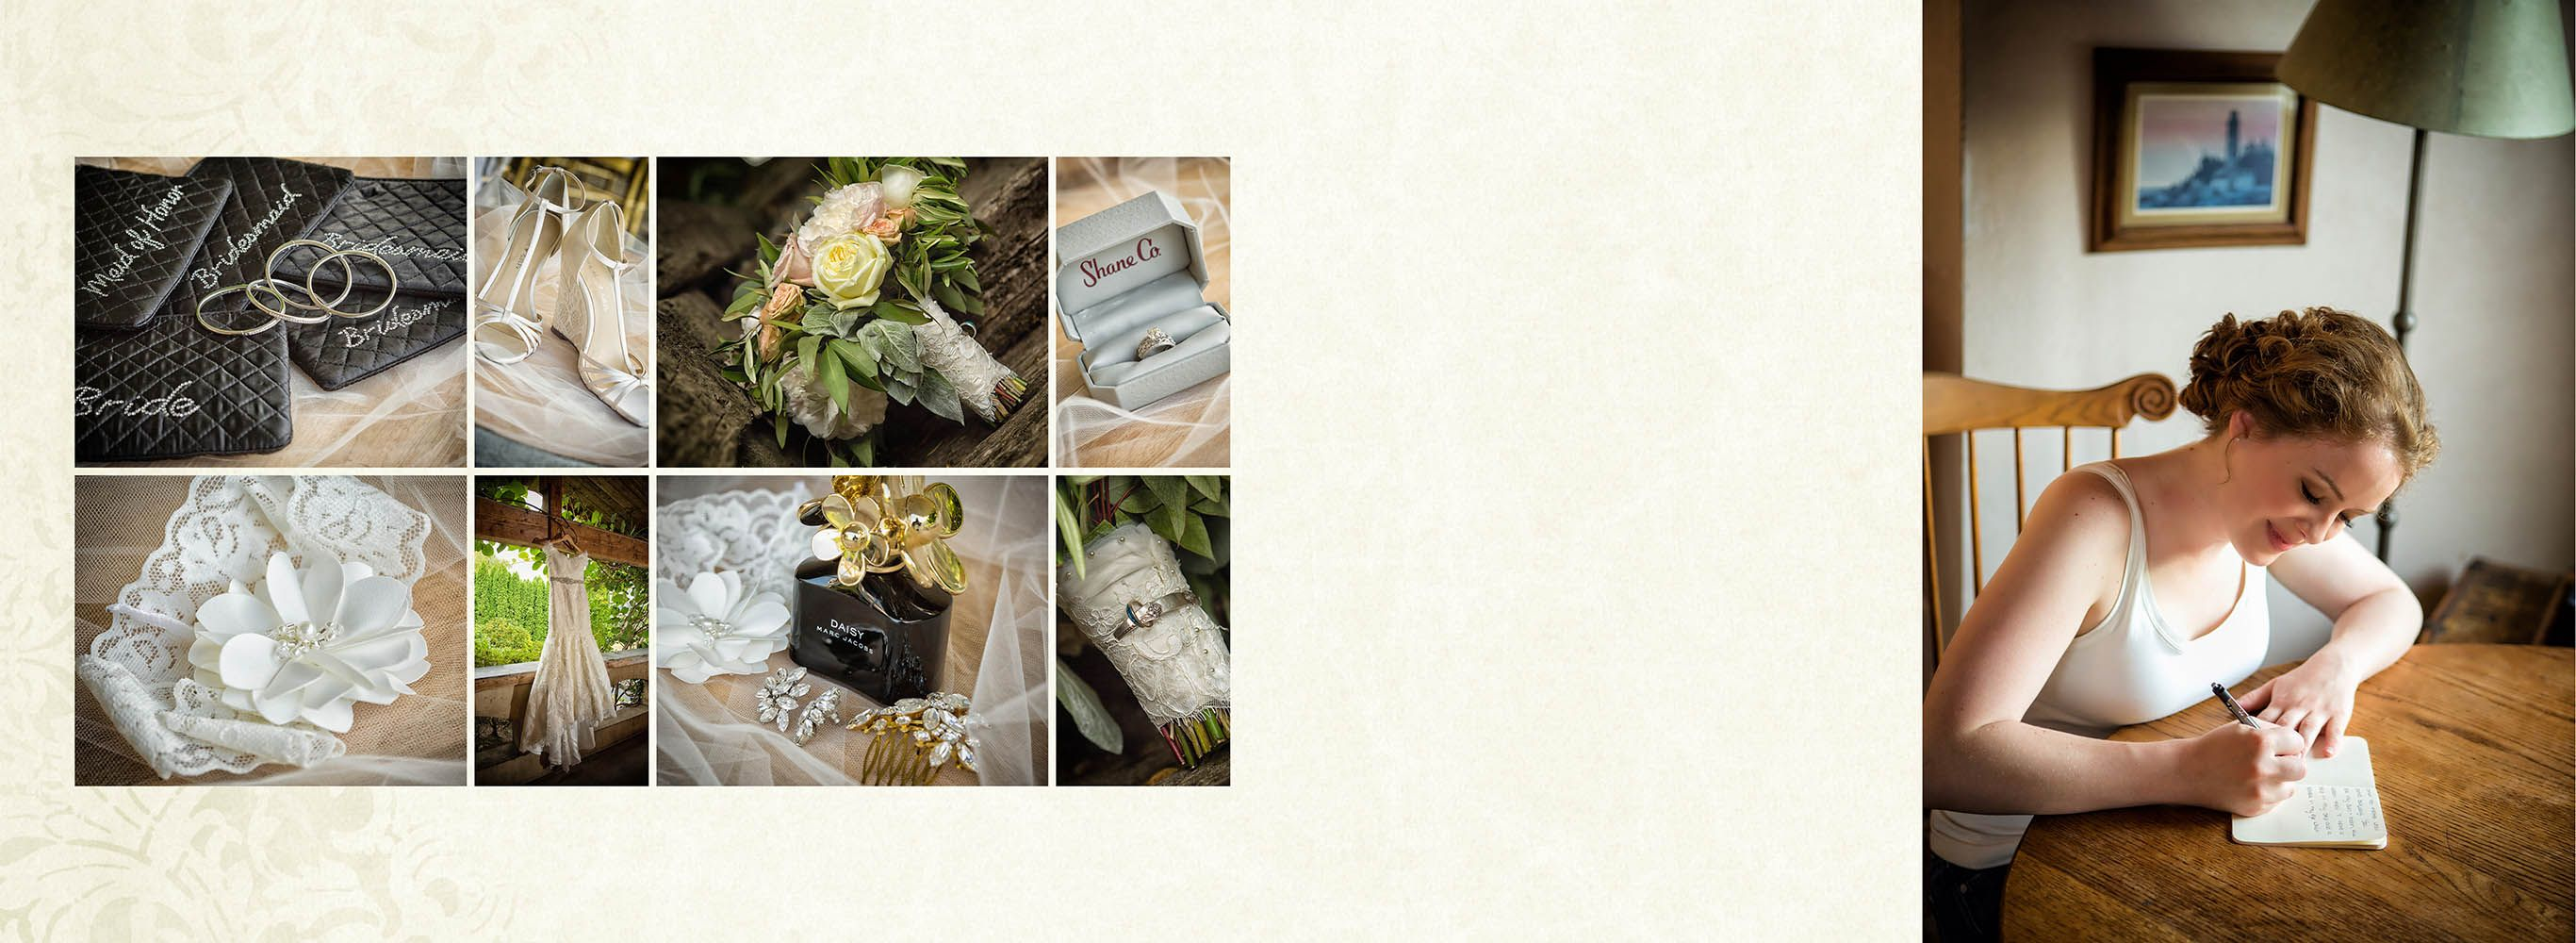 Winstanley Wedding Album V1-Spread-002.jpg